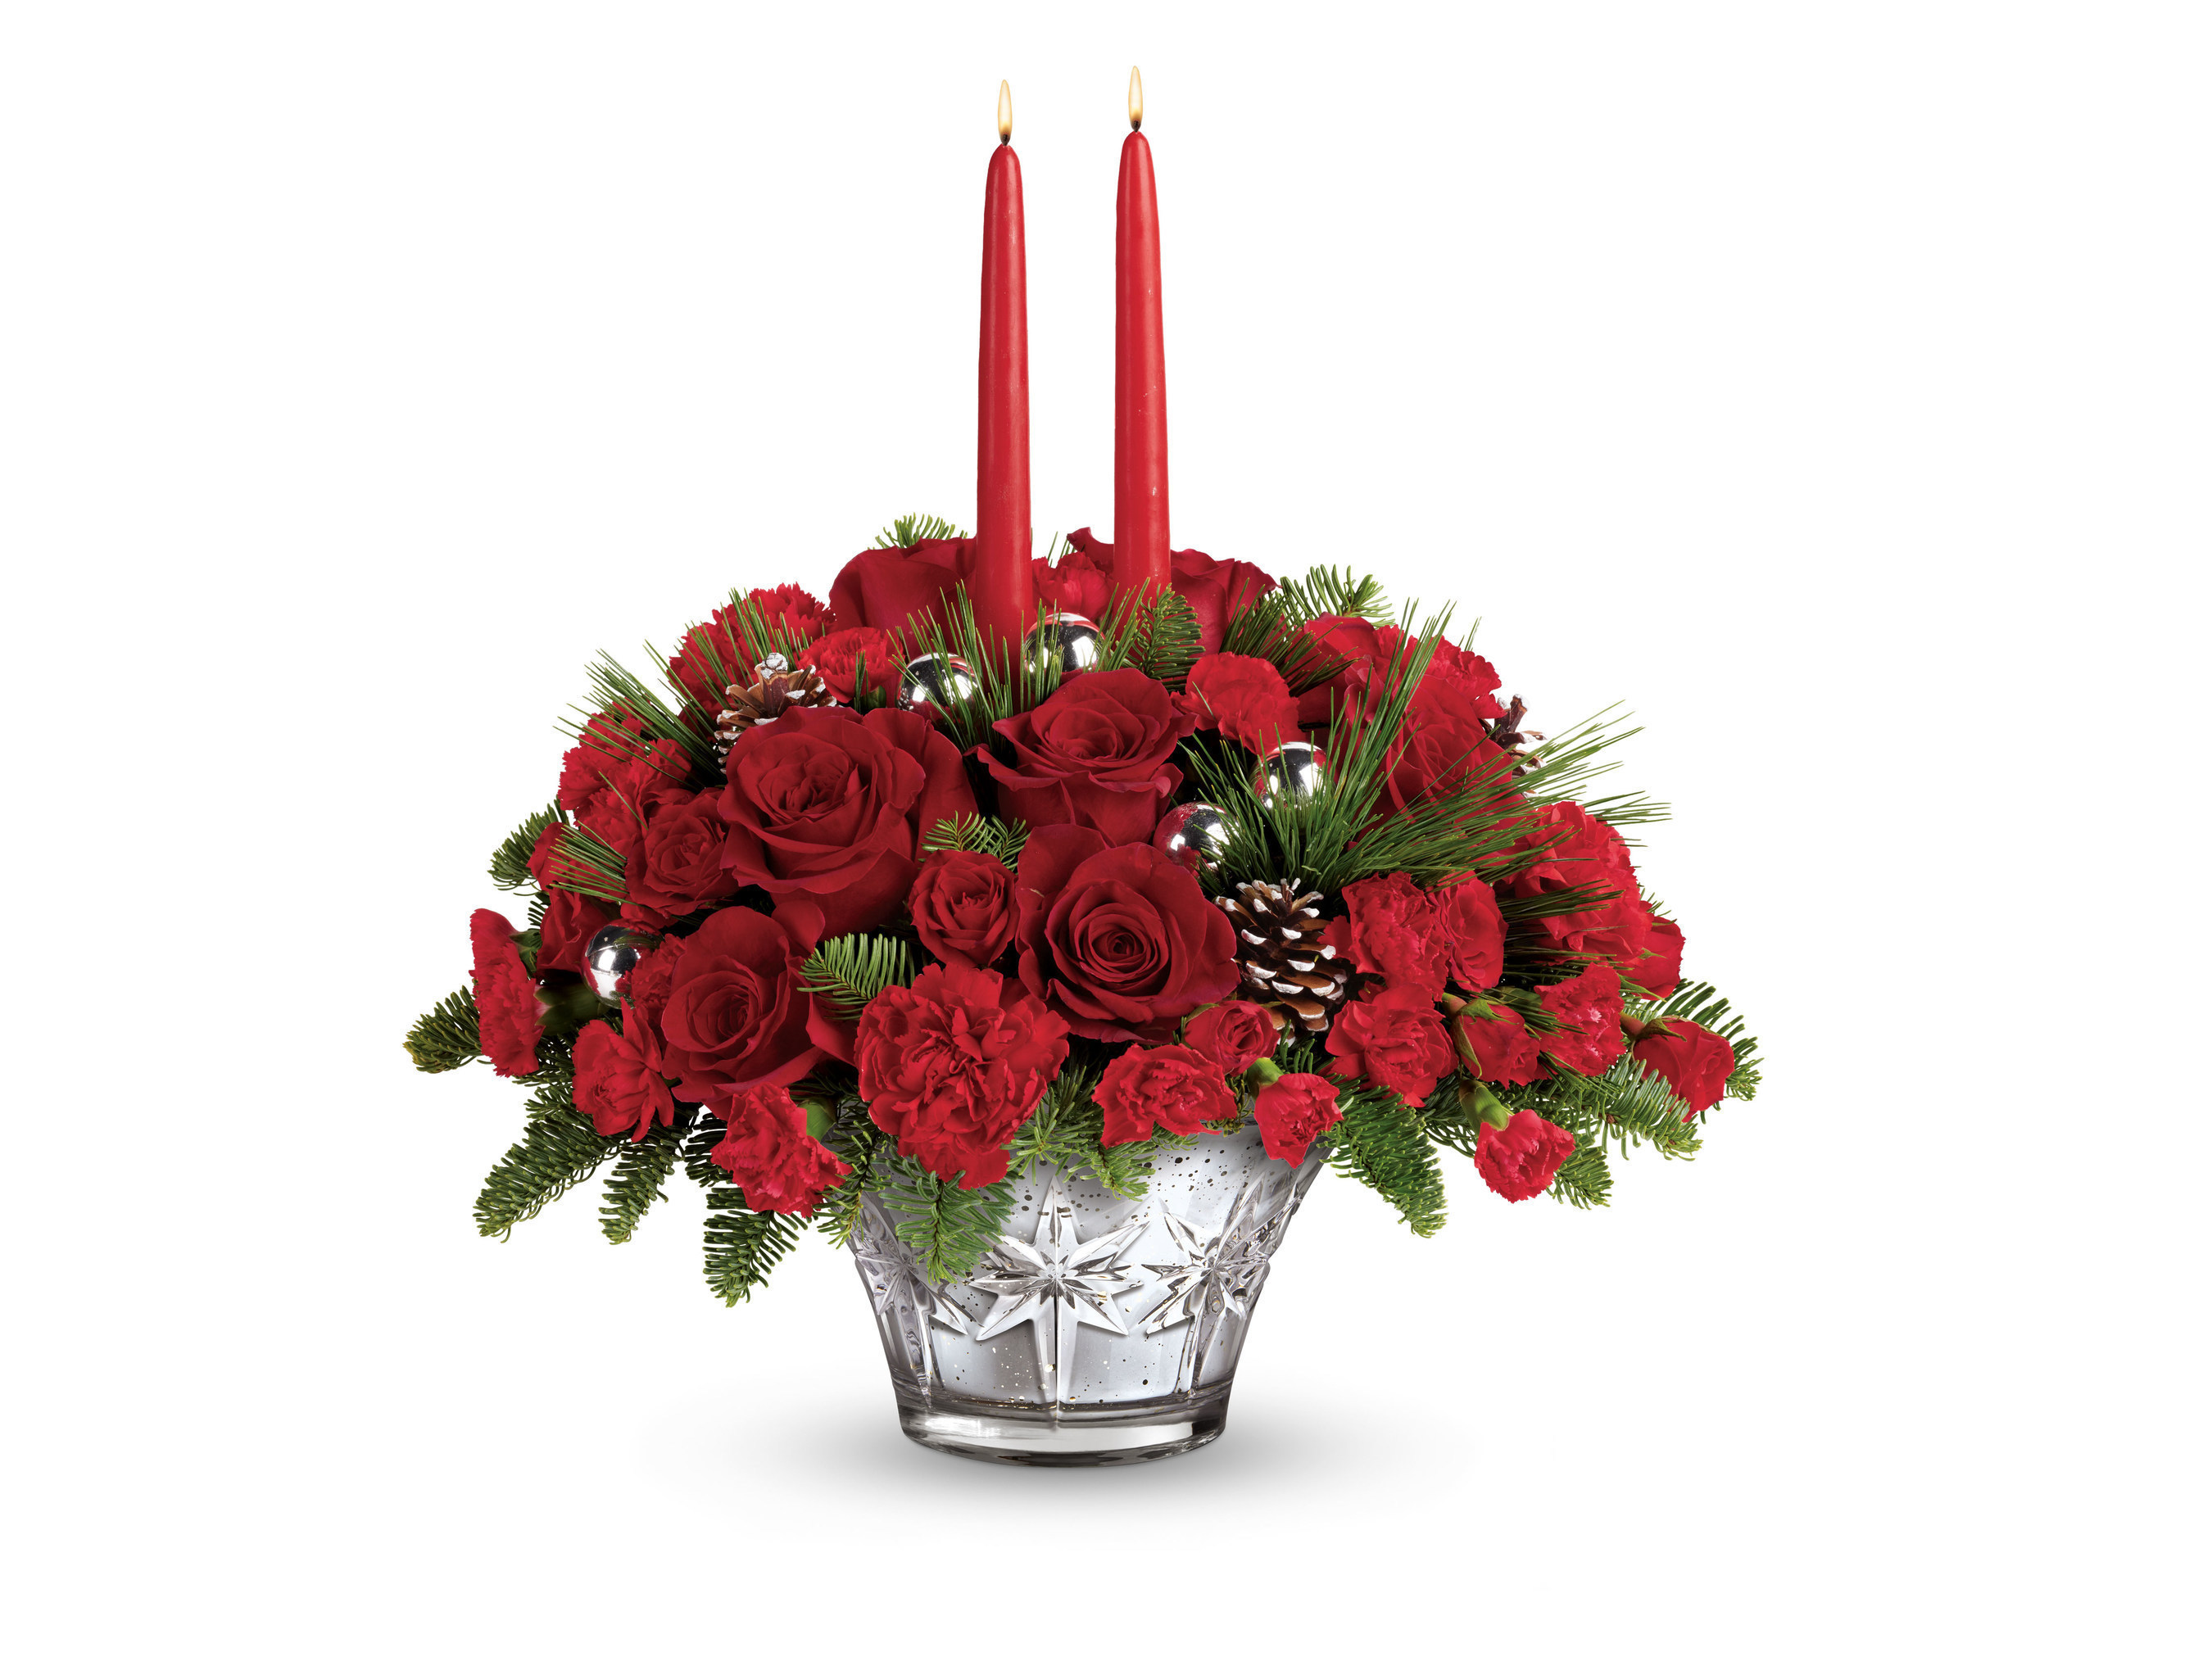 Cant be there this holiday season deliver yourself with telefloras sparkling star centerpiece from its new 2016 holiday collection teleflora solutioingenieria Gallery